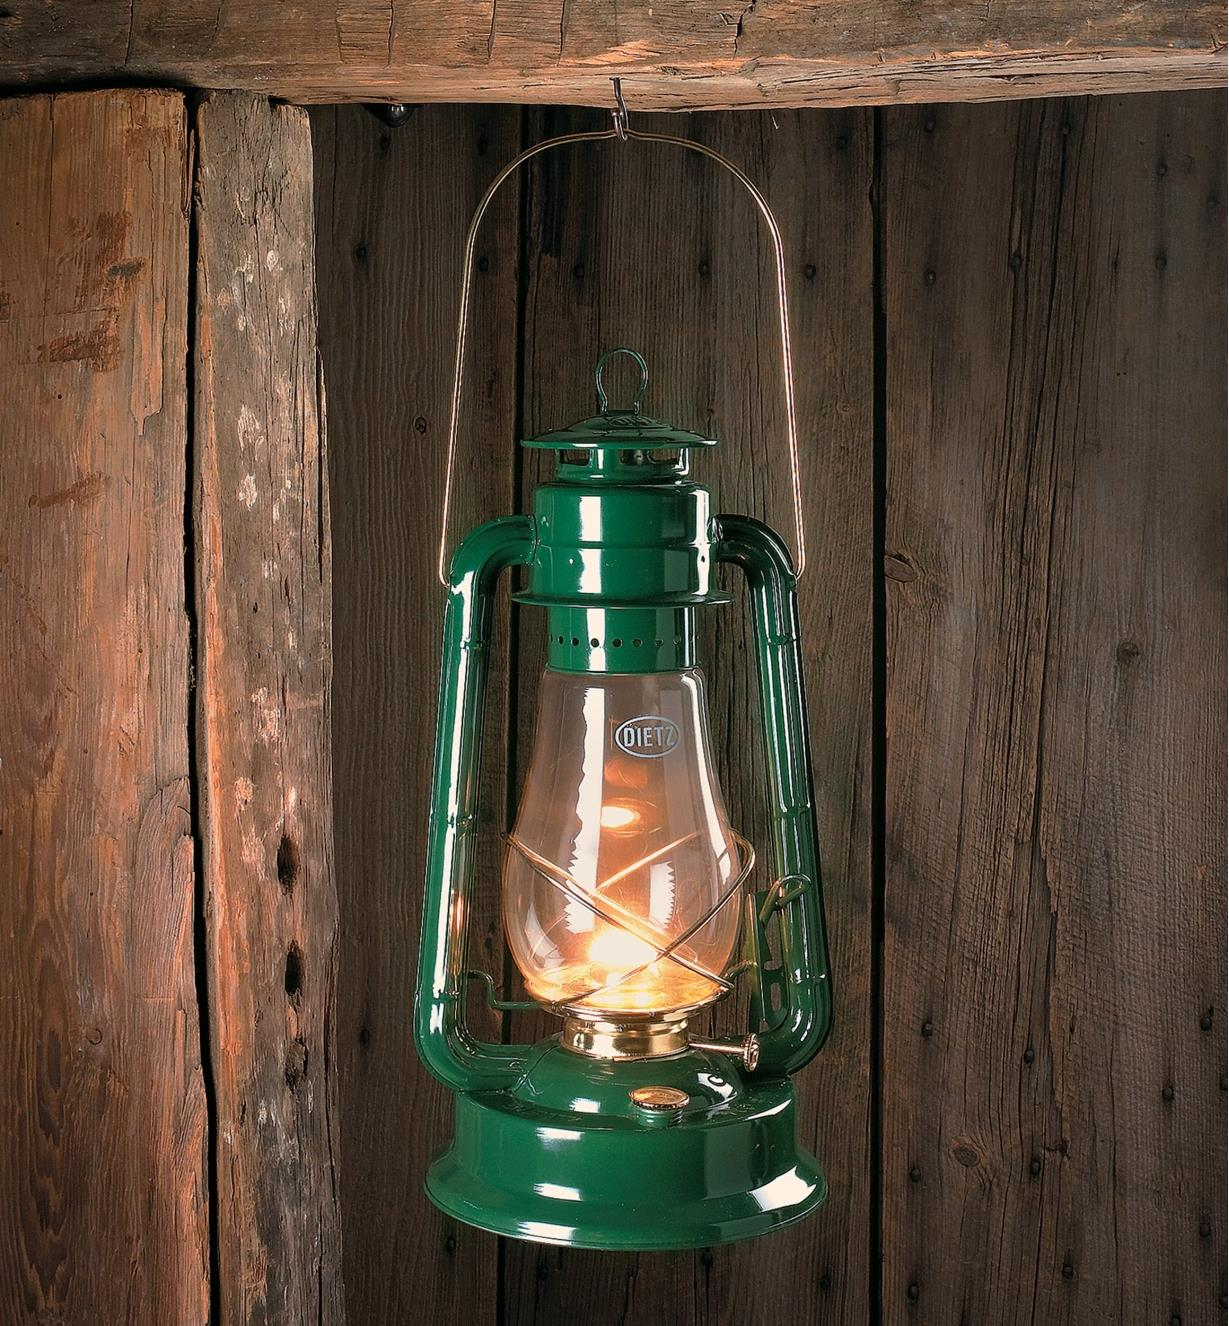 Dietz No. 80 Hurricane Lantern hanging on a hook